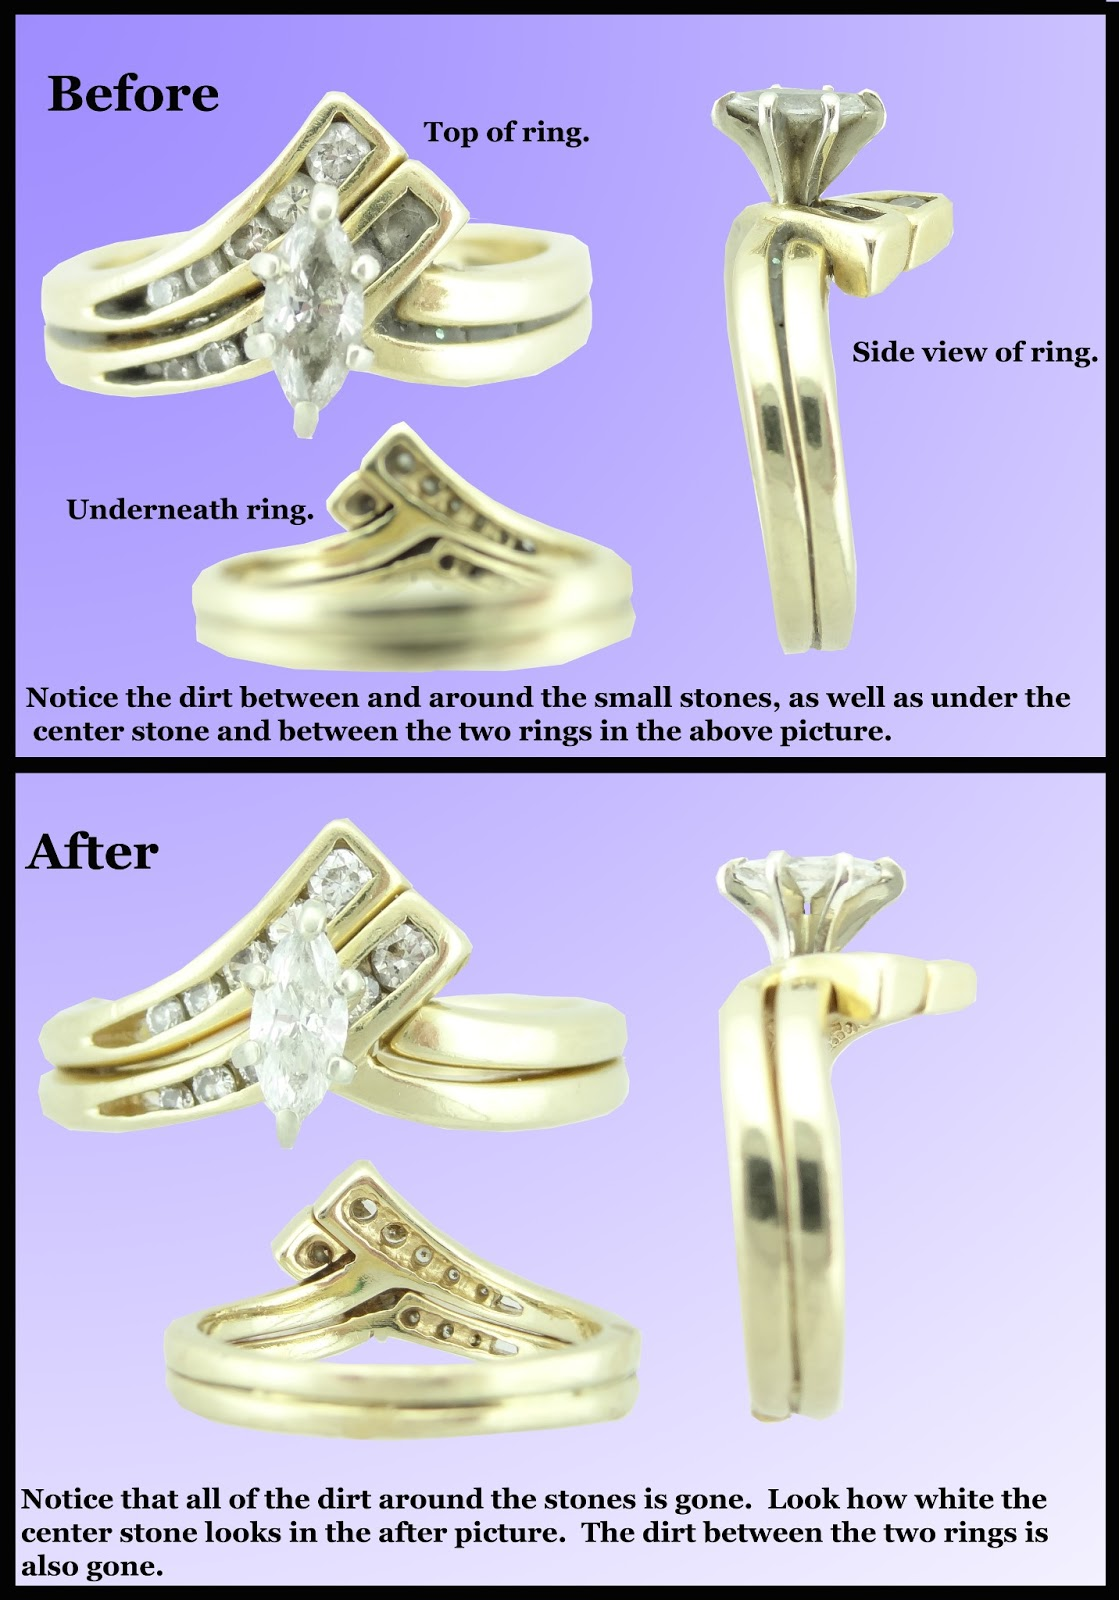 I Truly Believe That There Is No Easier, Safer Way To Clean Fine Jewelry At  Home Okay, I'm Done Saying What I Have To Say Take A Look At The Picture,